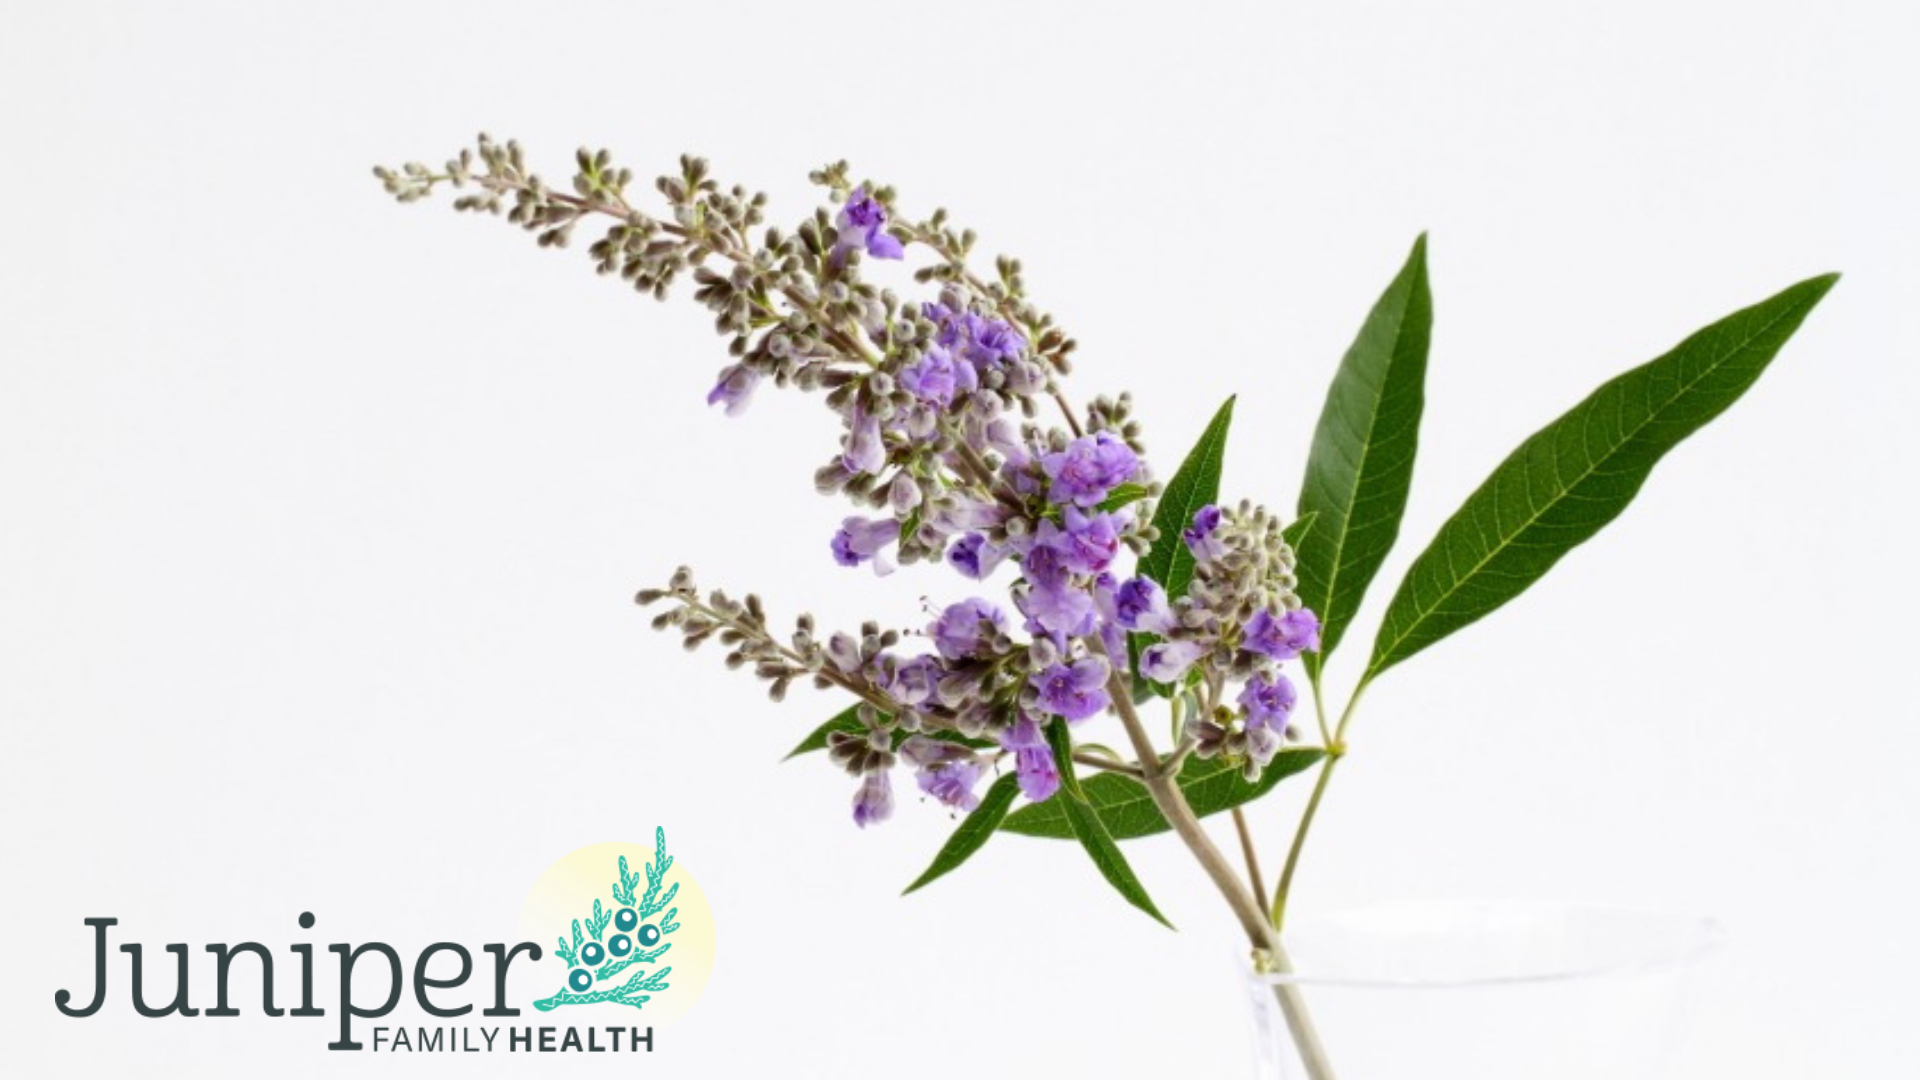 naturopath victoria, naturopathic doctor victoria, naturopathic clinics victoria, naturopathic clinics victoria, naturopathic physician, naturopathic, naturopath, women's health, vitex, chaste tree, chaste berry, PMS, PMDD, menstrual disorders, hormones, herbal medicine